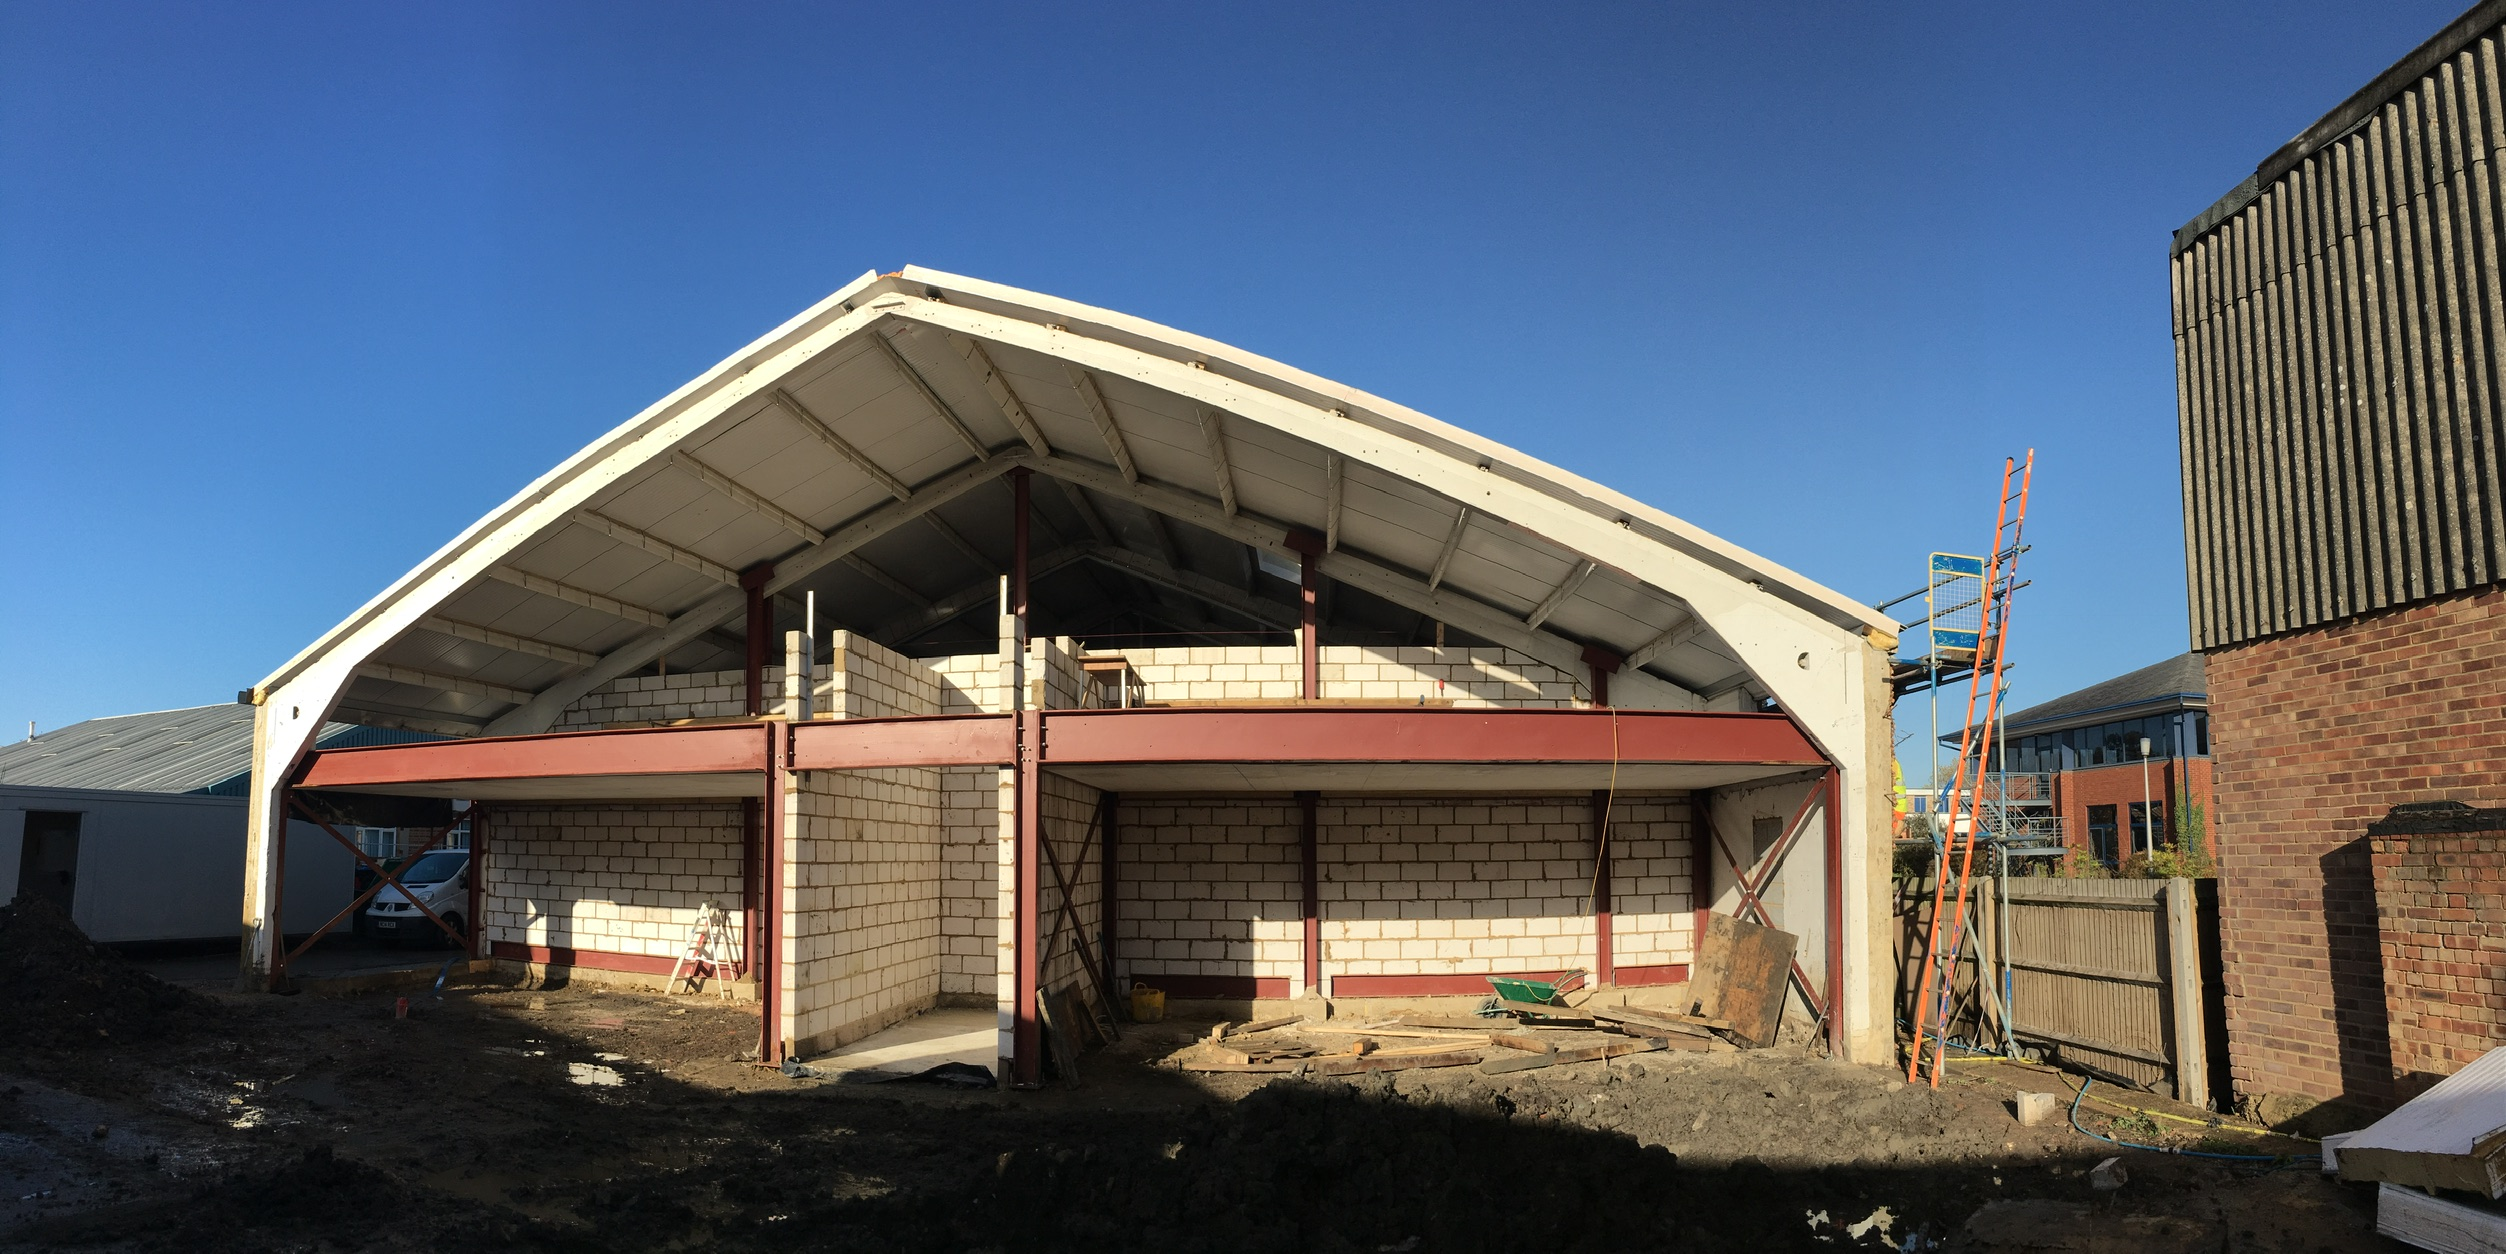 Two offices for the owners with undercroft parking